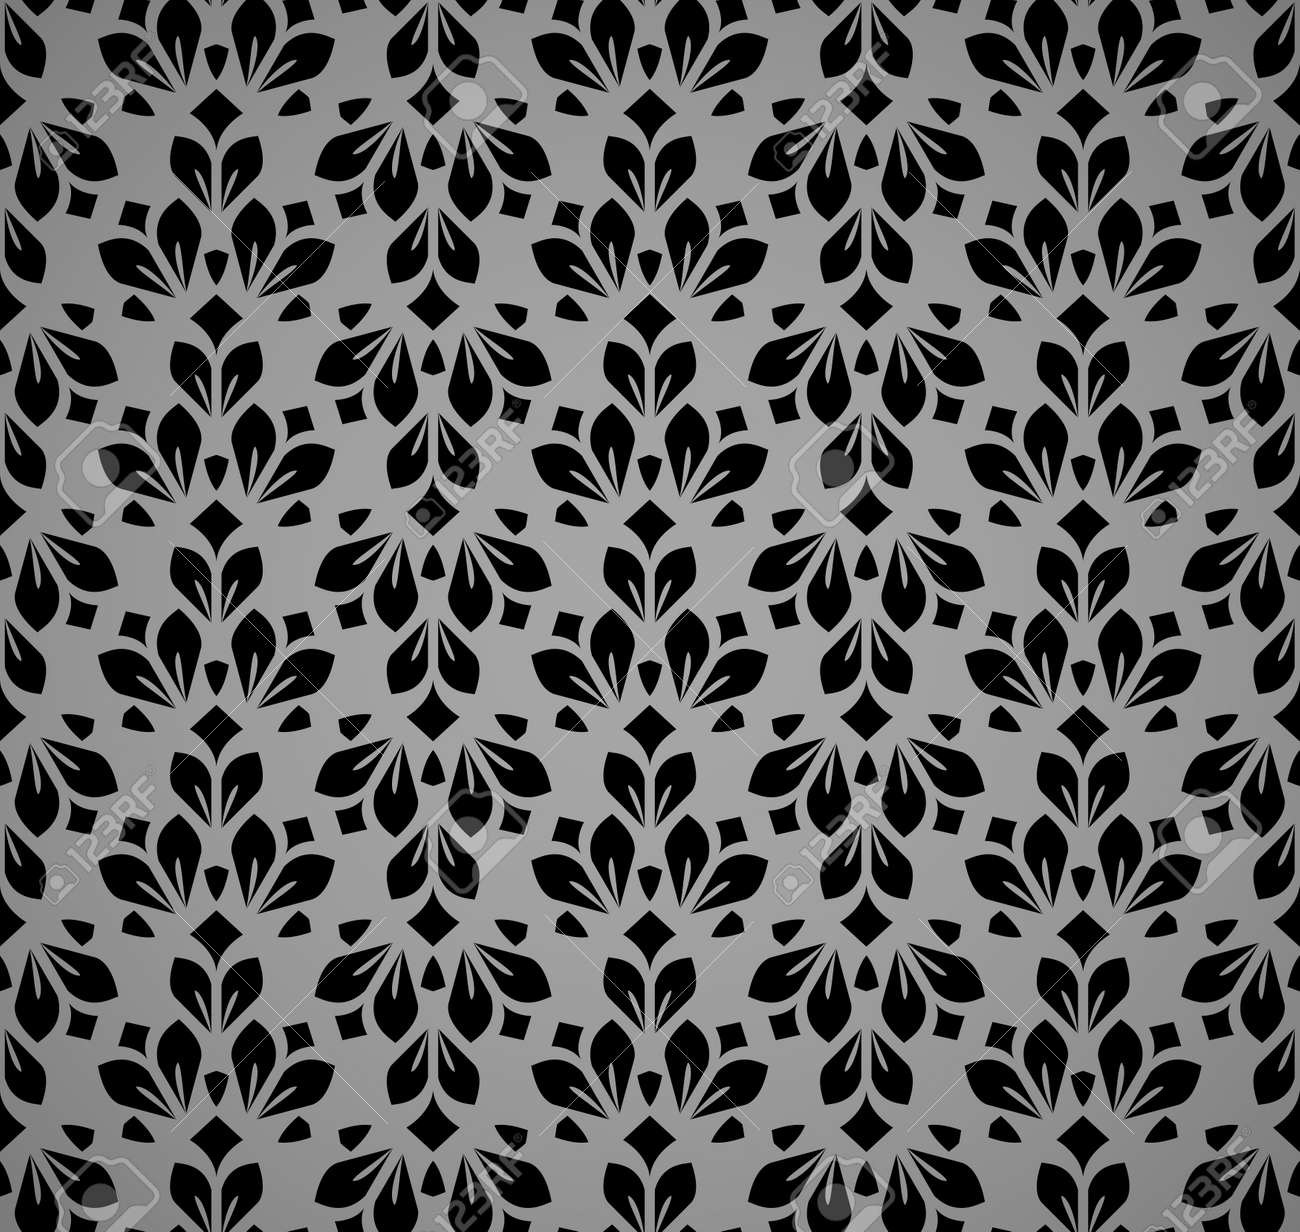 Flower geometric pattern. Seamless vector background. Black and gray ornament - 170173023